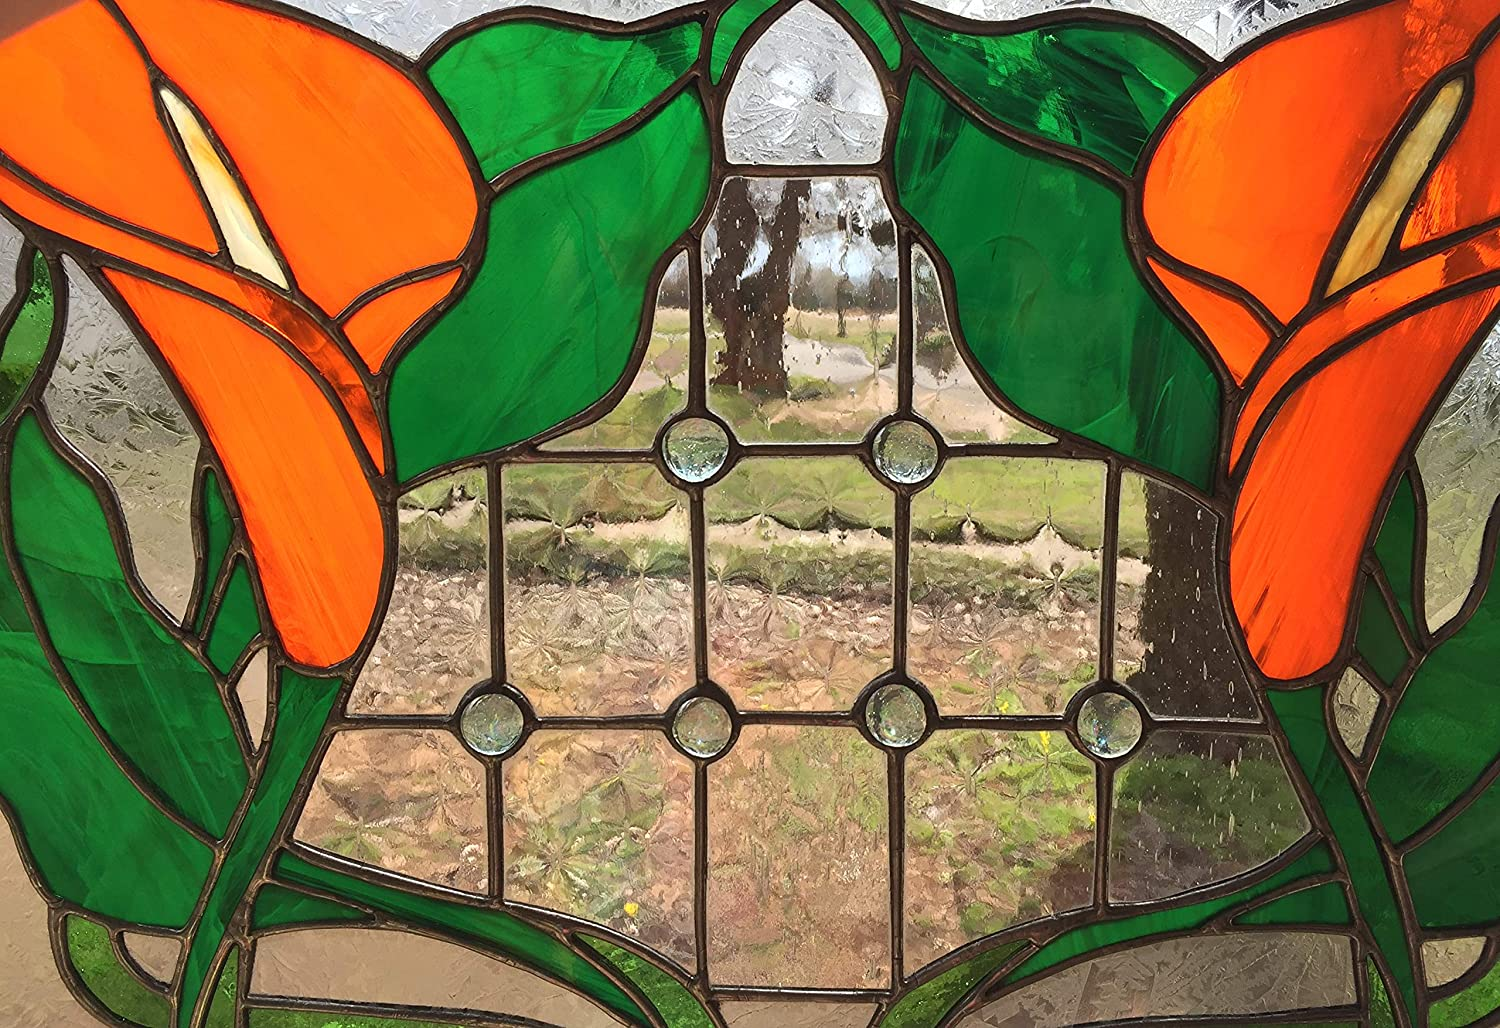 Stained glass Orange panel